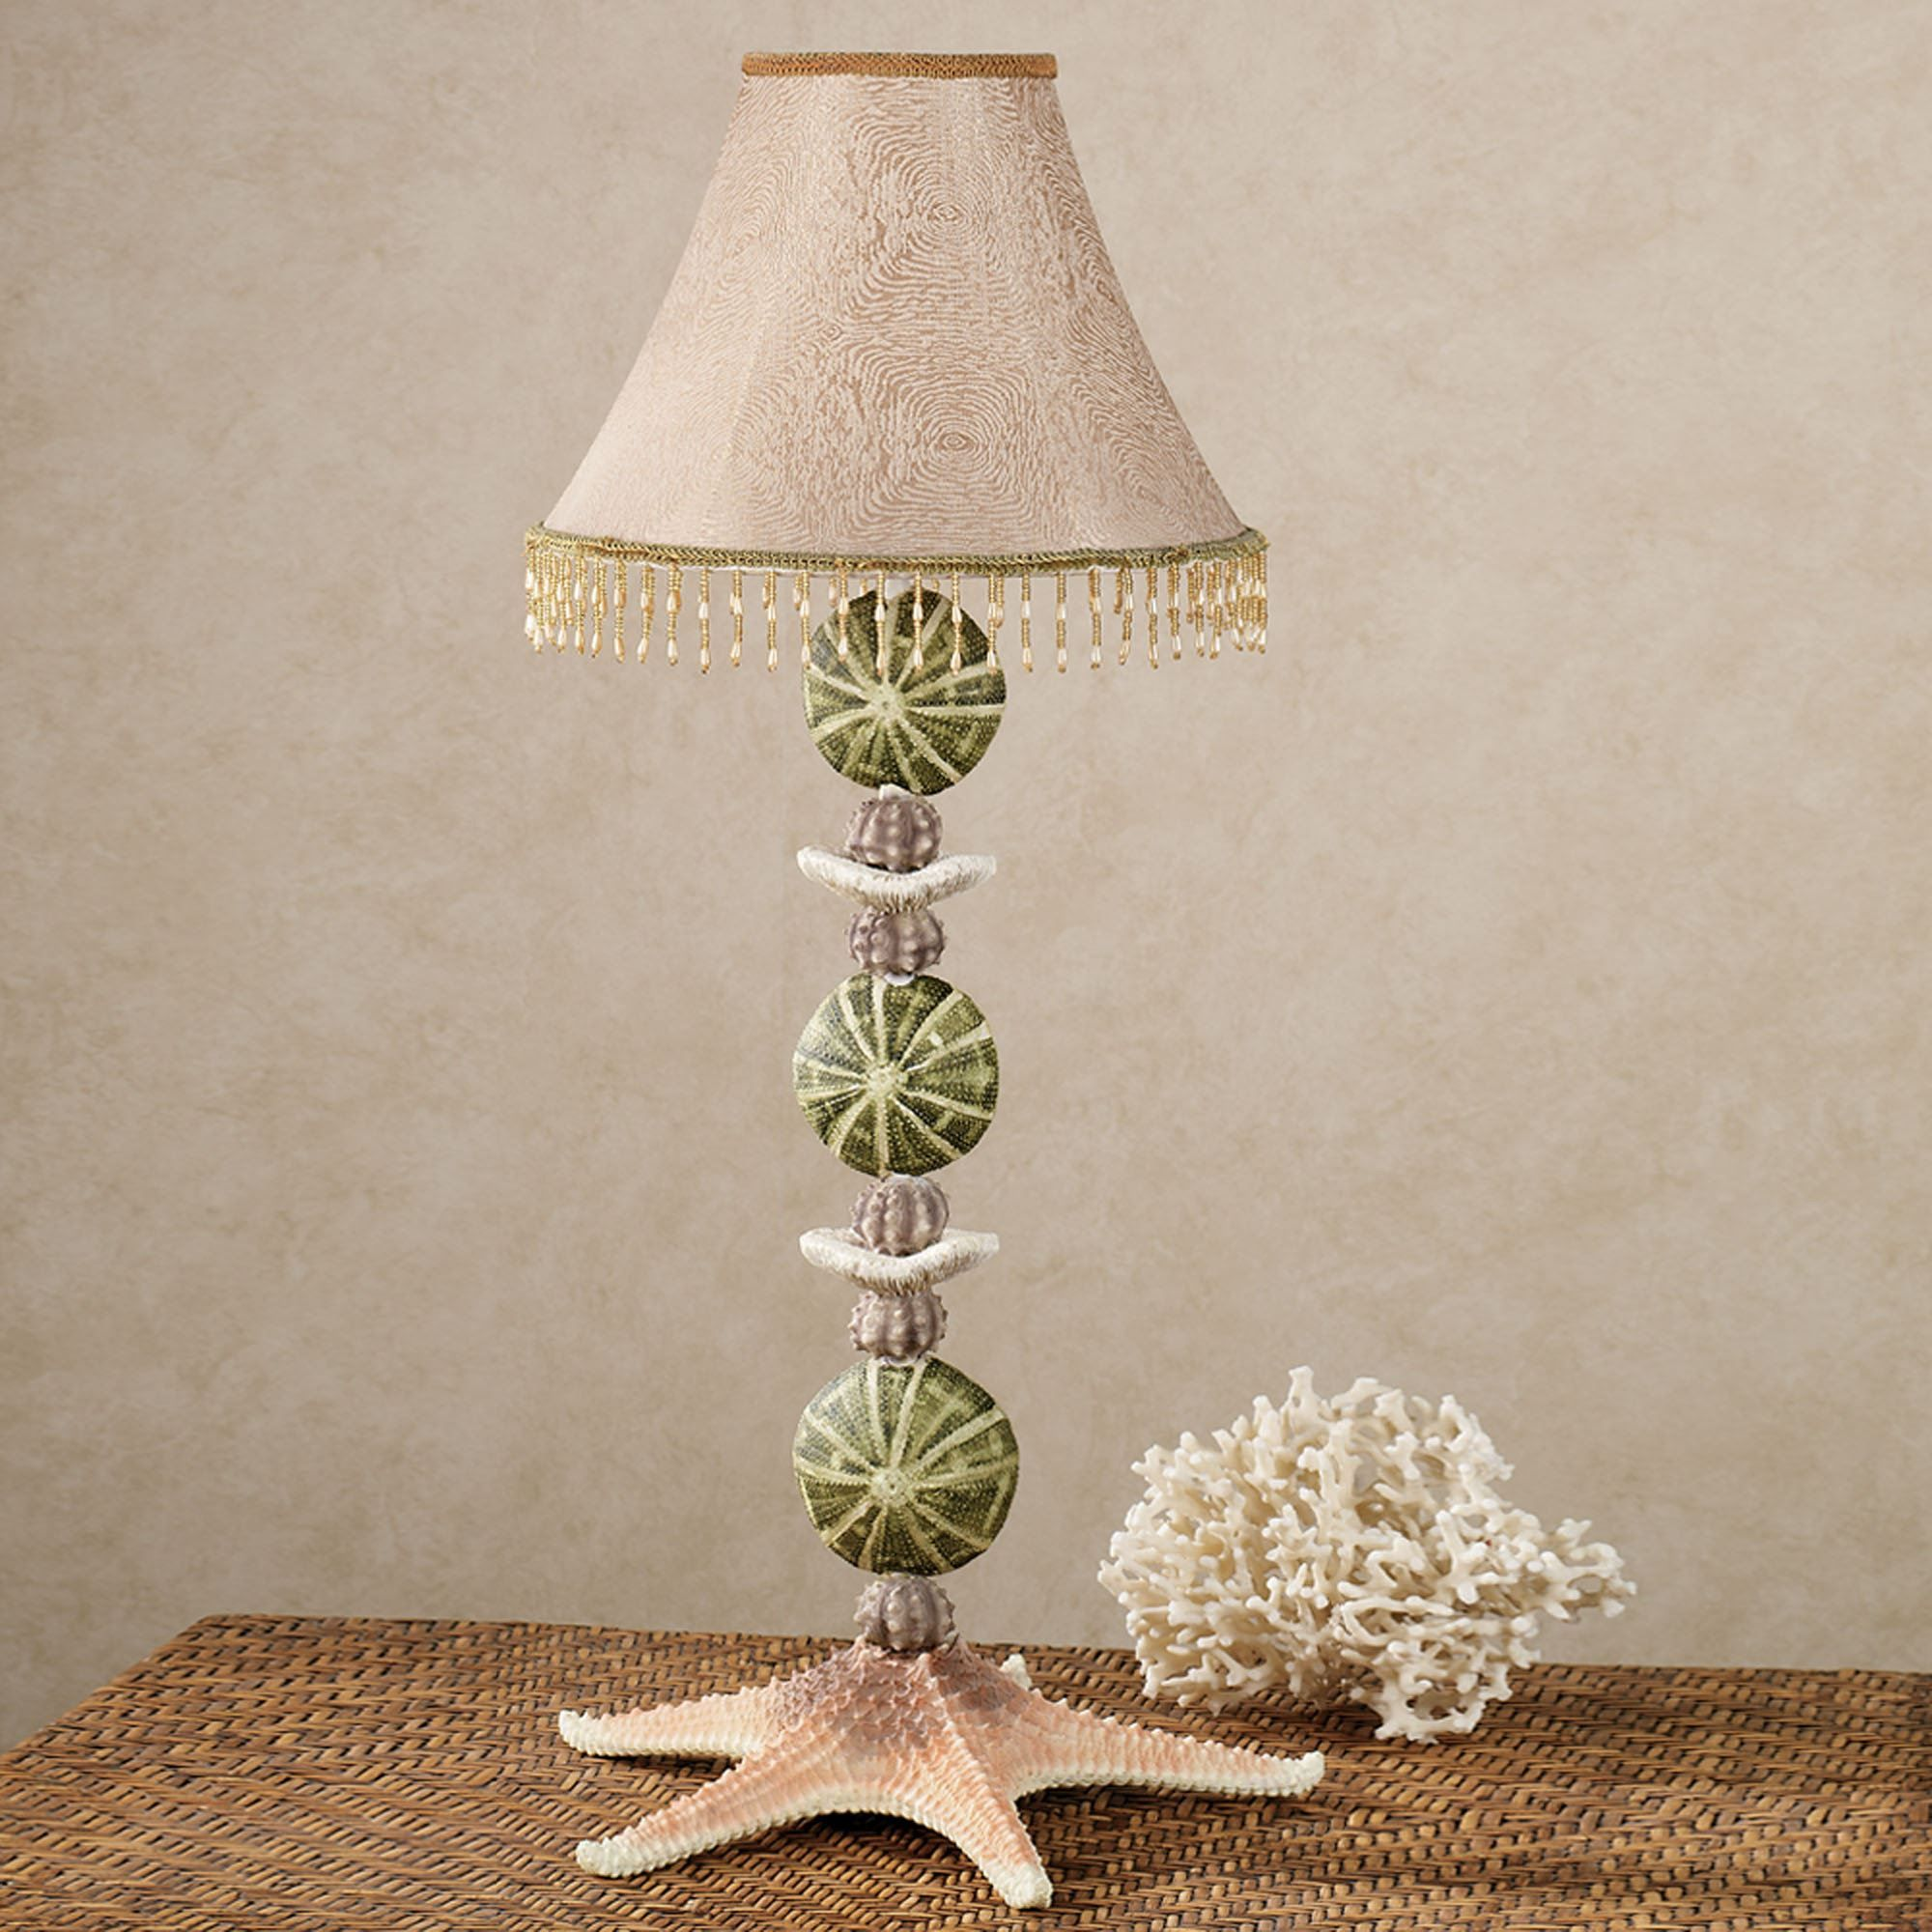 Home Design Ideas with Seashell Table Lamp HD Images Picture